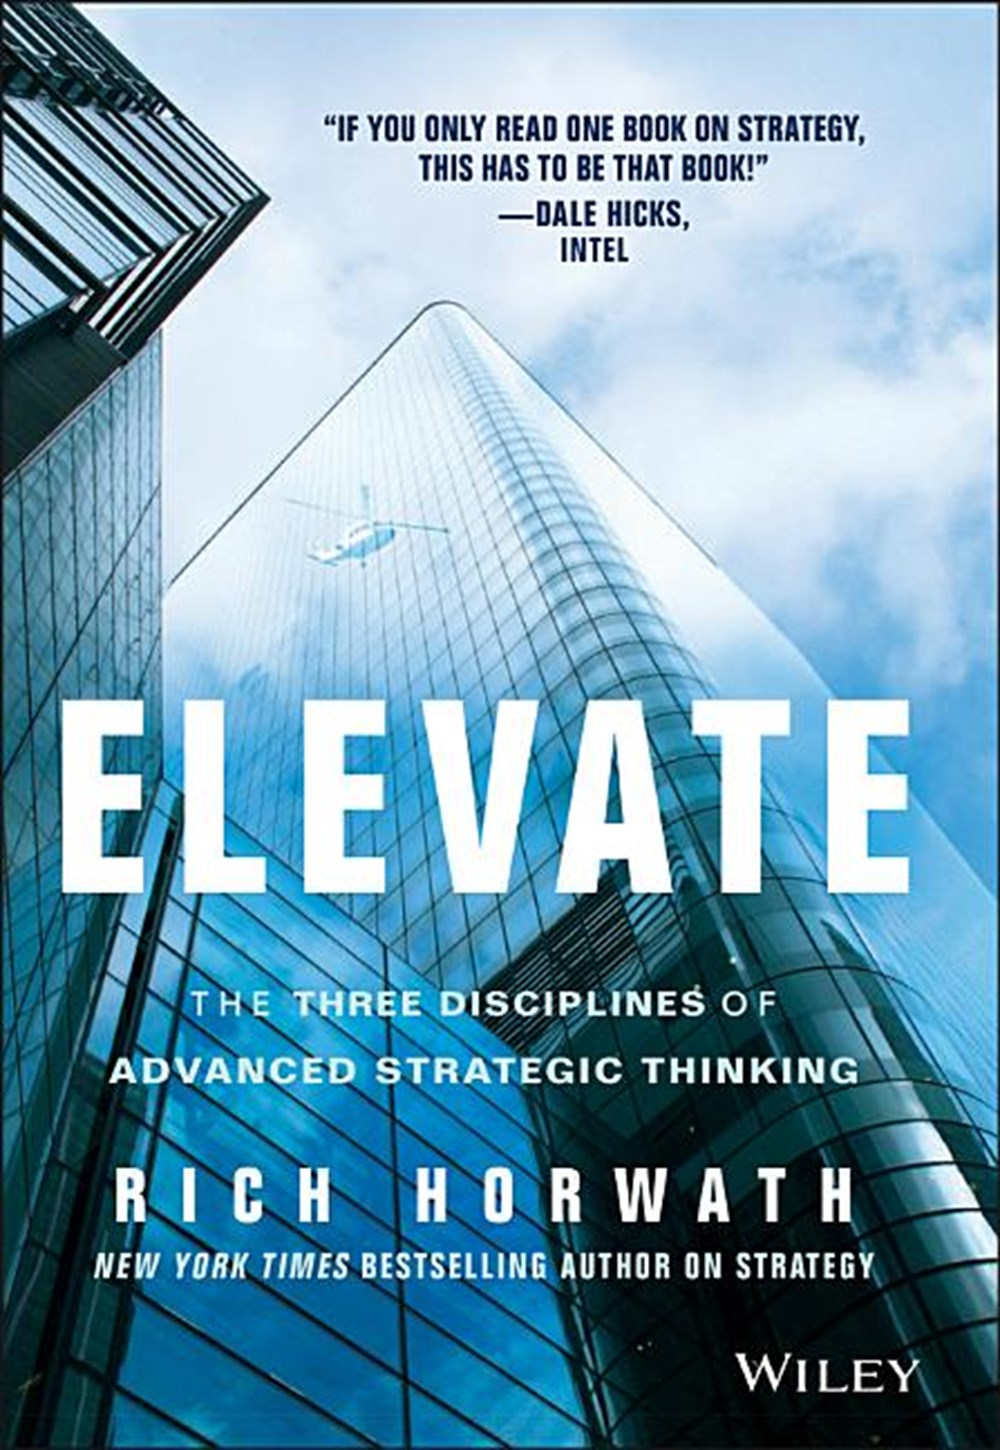 Elevate The Three Disciplines of Advanced Strategic Thinking